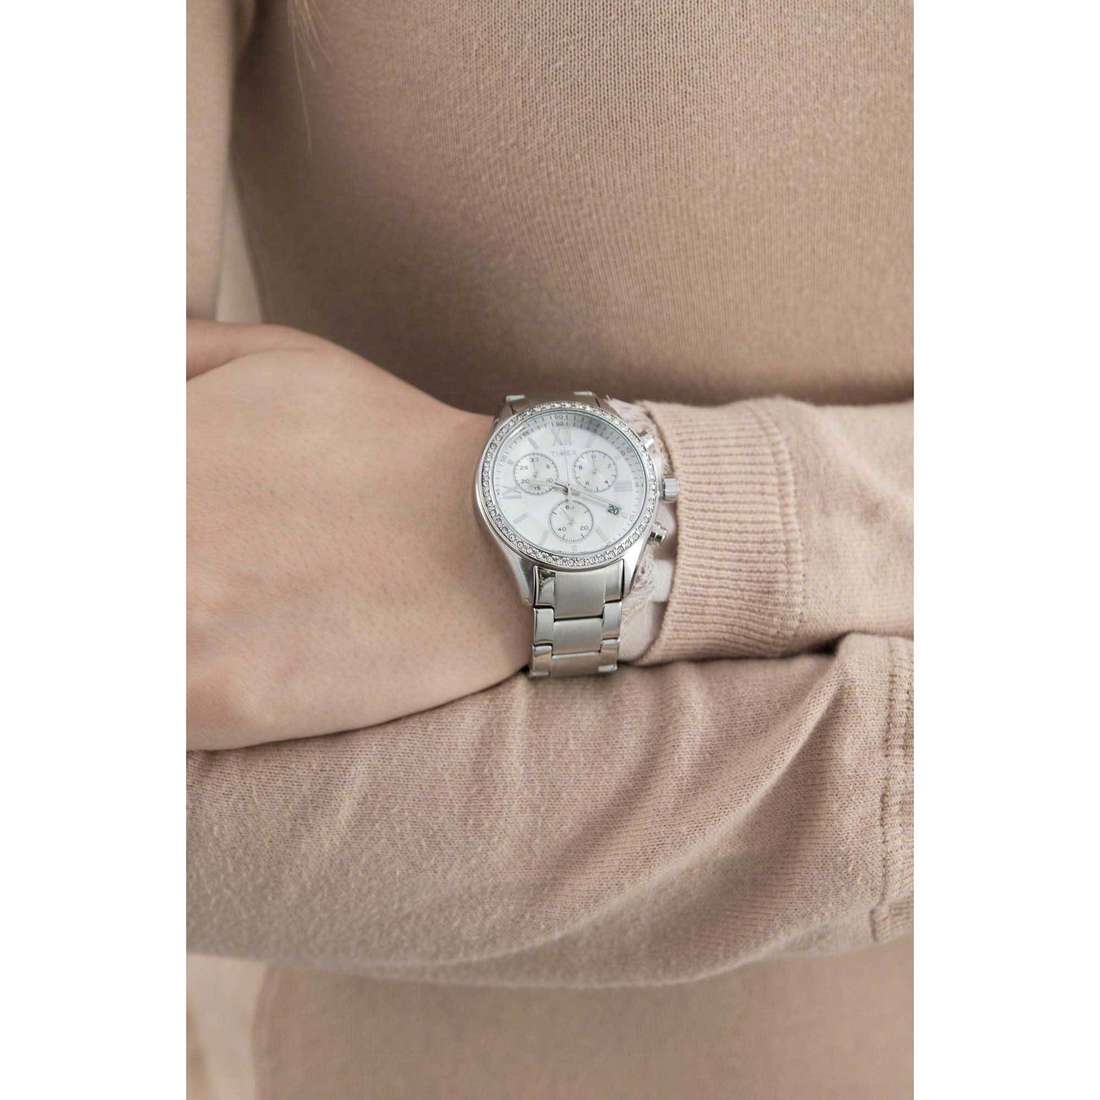 Timex chronographes Women's Collection femme TW2P66800 indosso